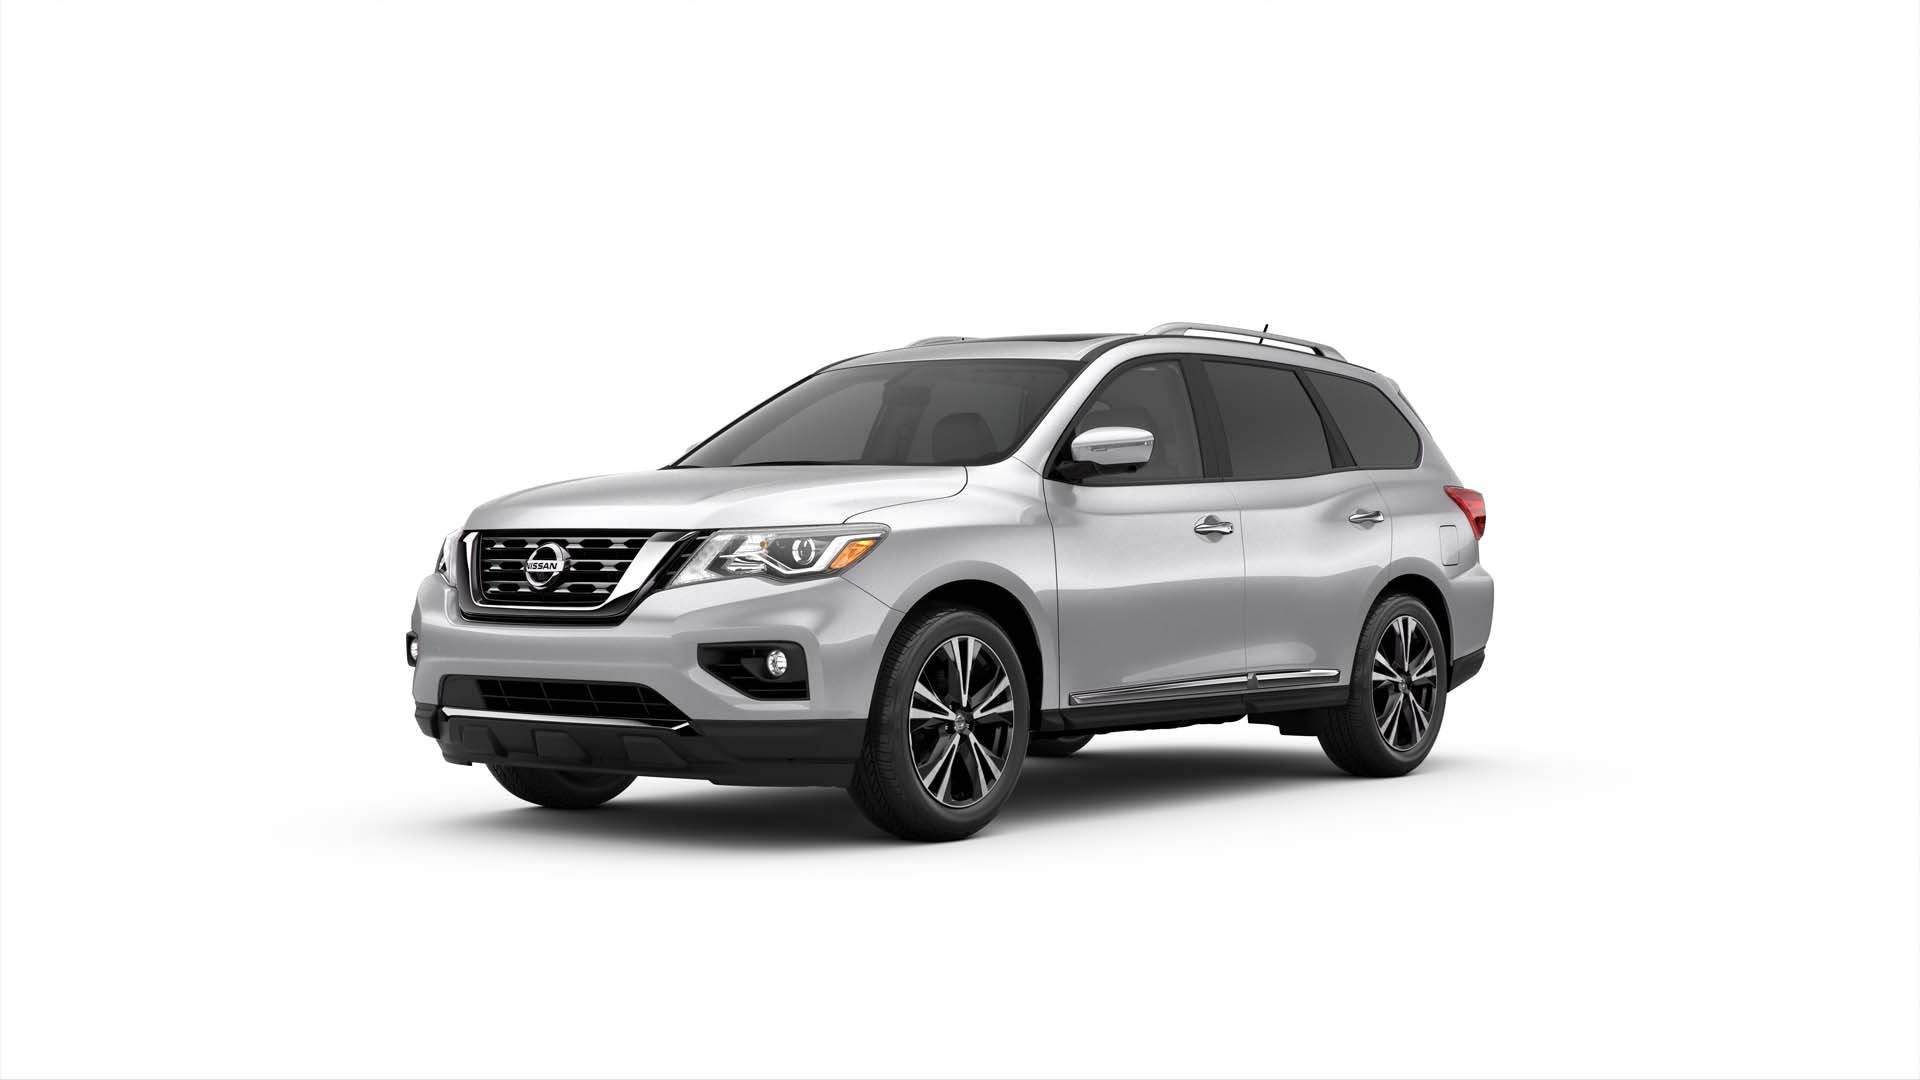 2017 Nissan Pathfinder Performance Review The Car Connection